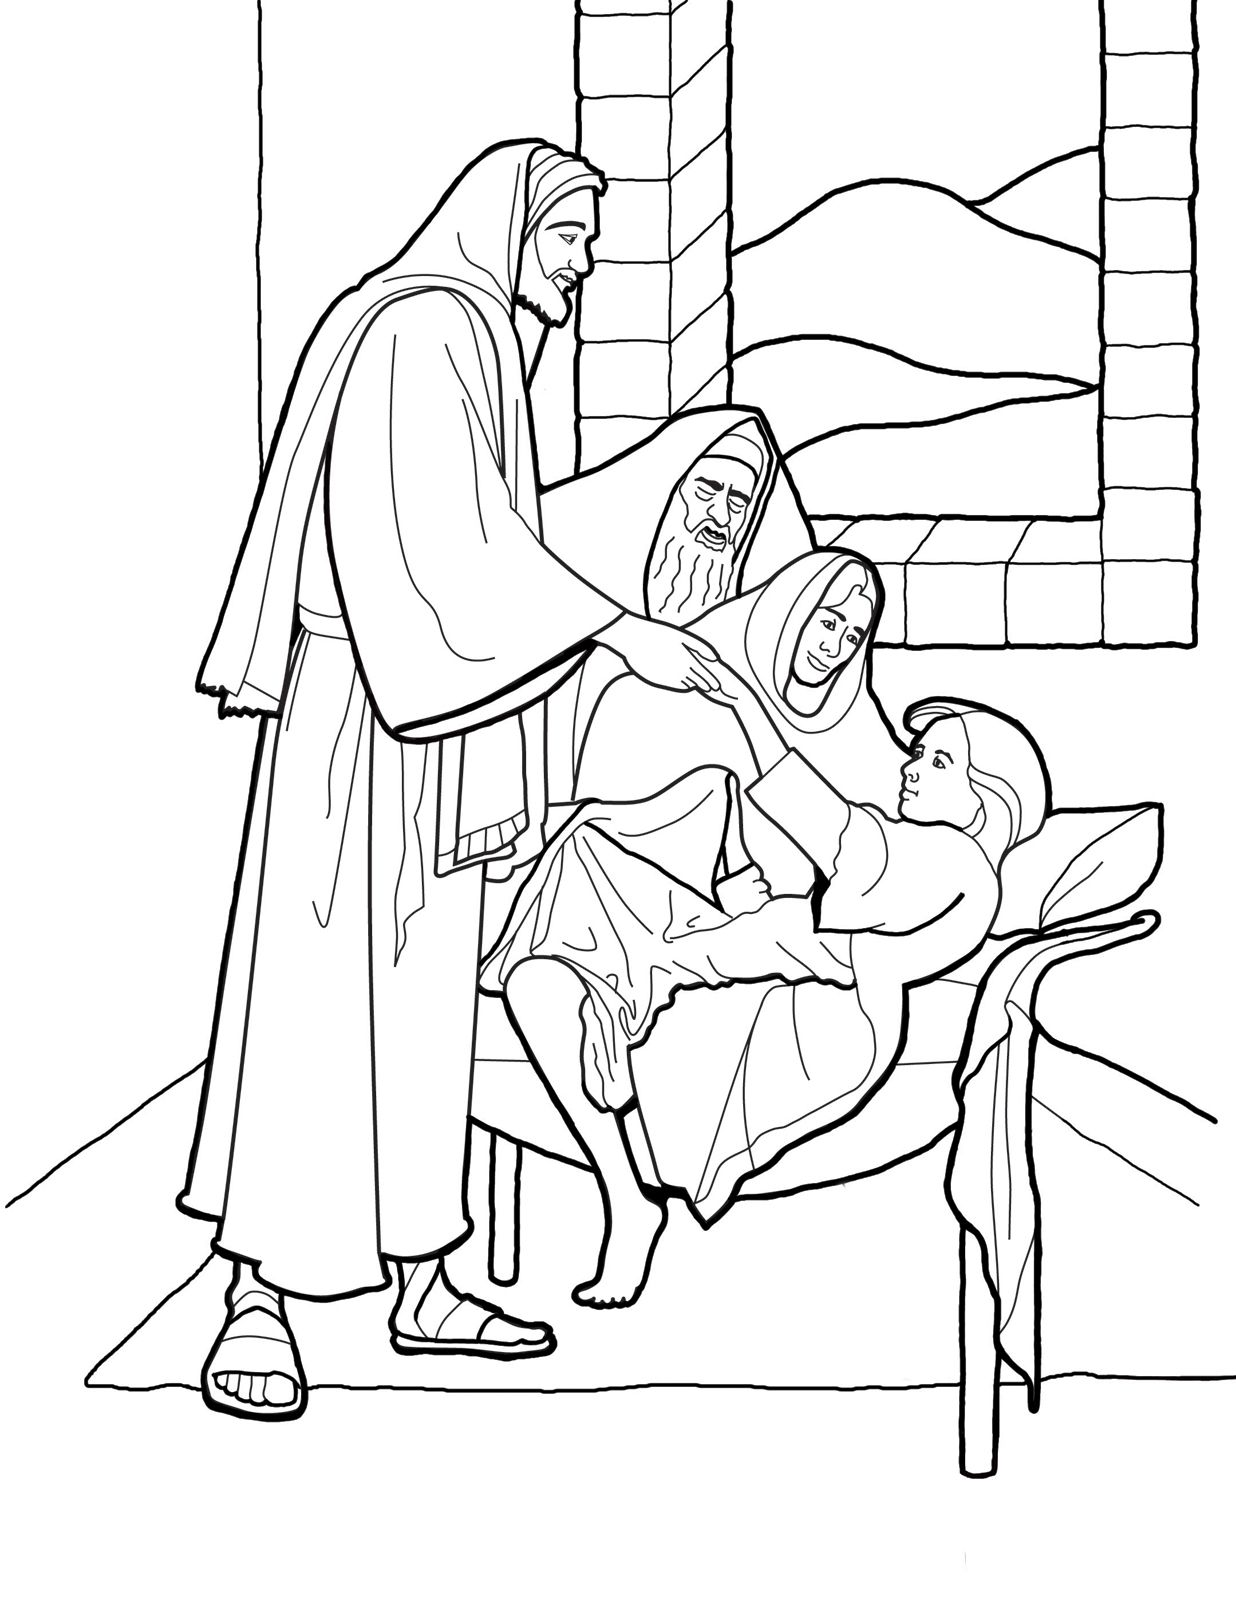 Christ raising Jairus 39 daughter Line art for Primary kids